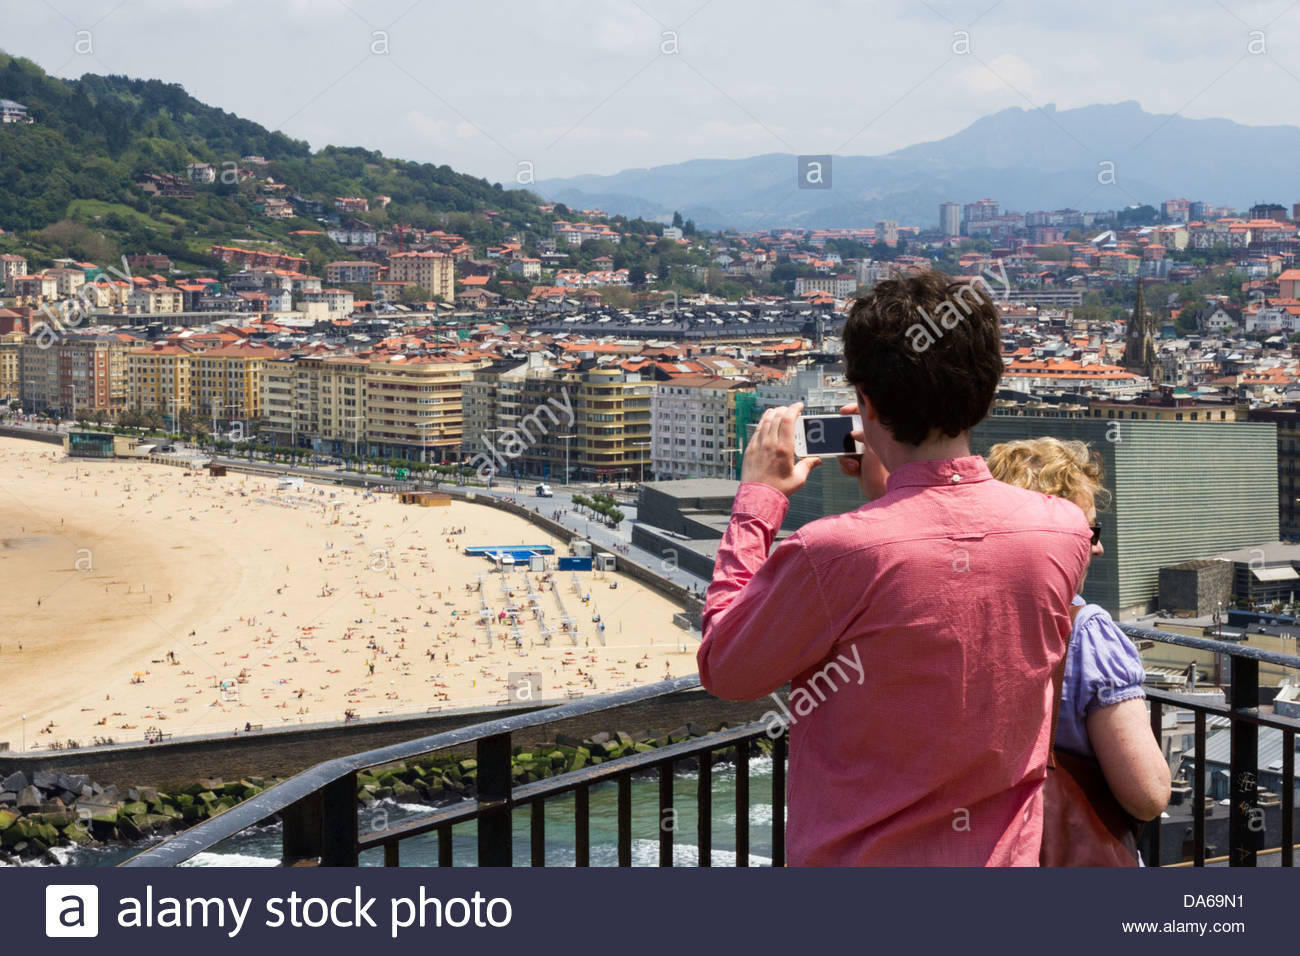 Looking down at the beach in Donostia - San Sebastian in the Basque Country - Stock Image